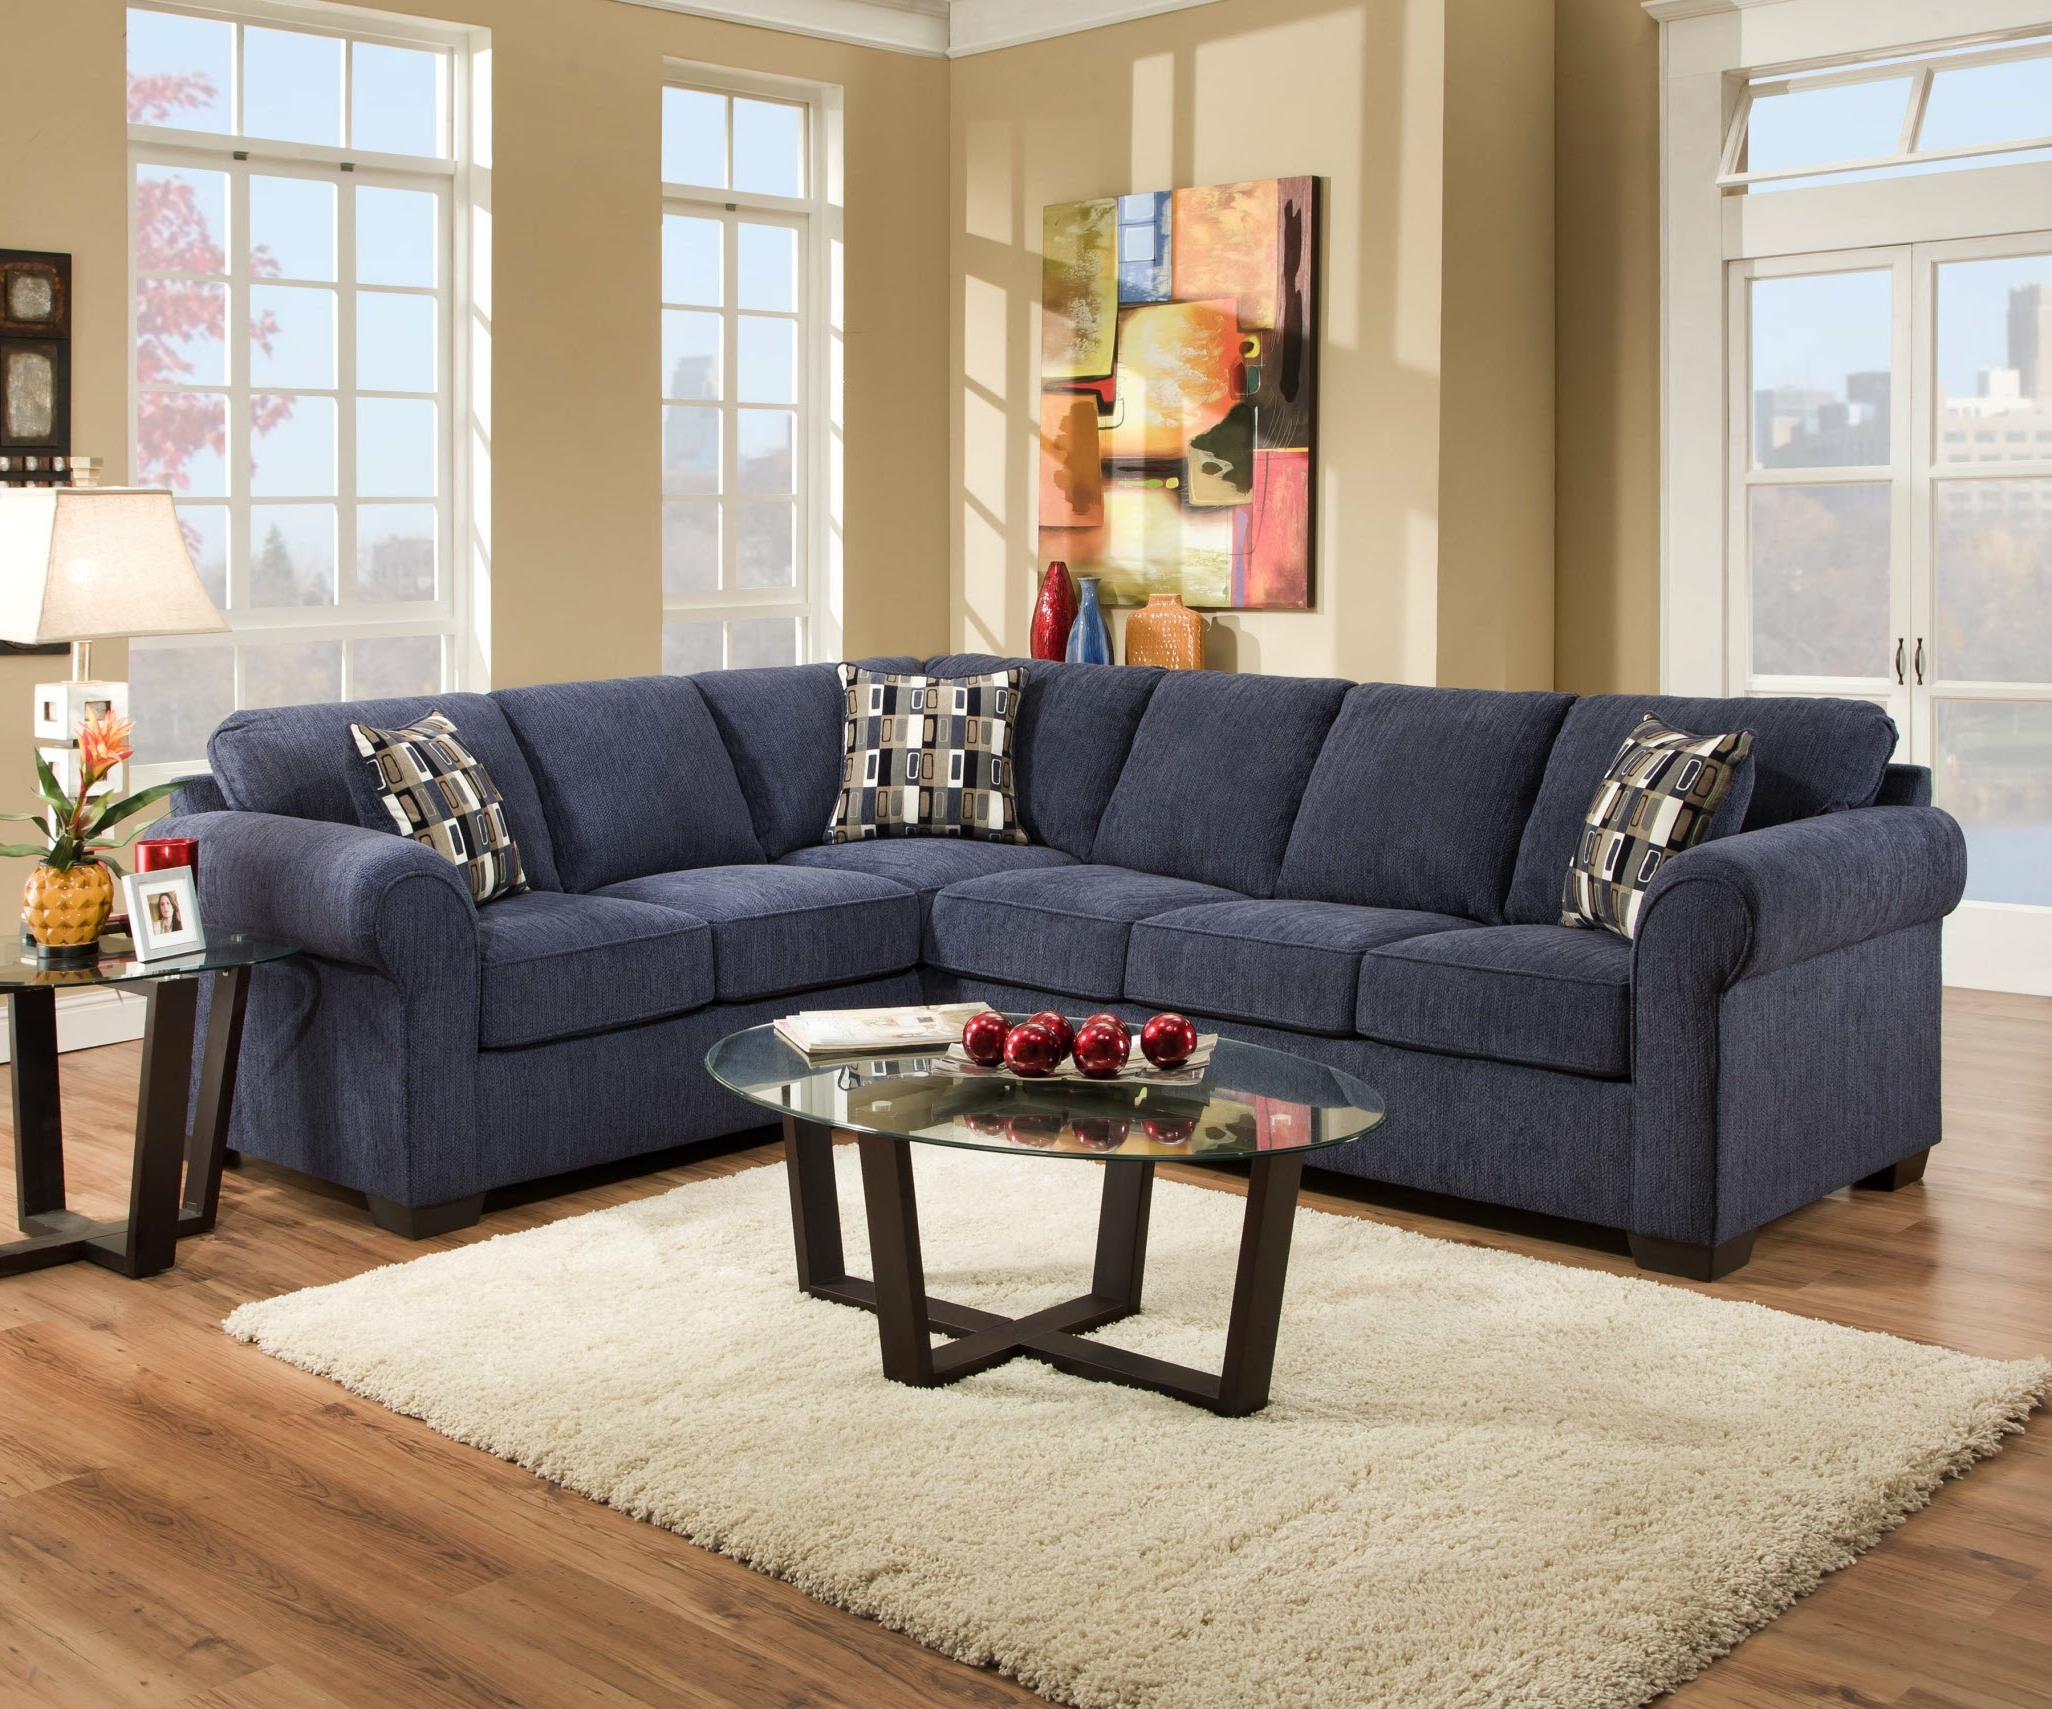 Widely Used Living Room Sofa Beautiful Blue Microfiber Sectional In Sofas Pertaining To Ottawa Sectional Sofas (View 6 of 20)